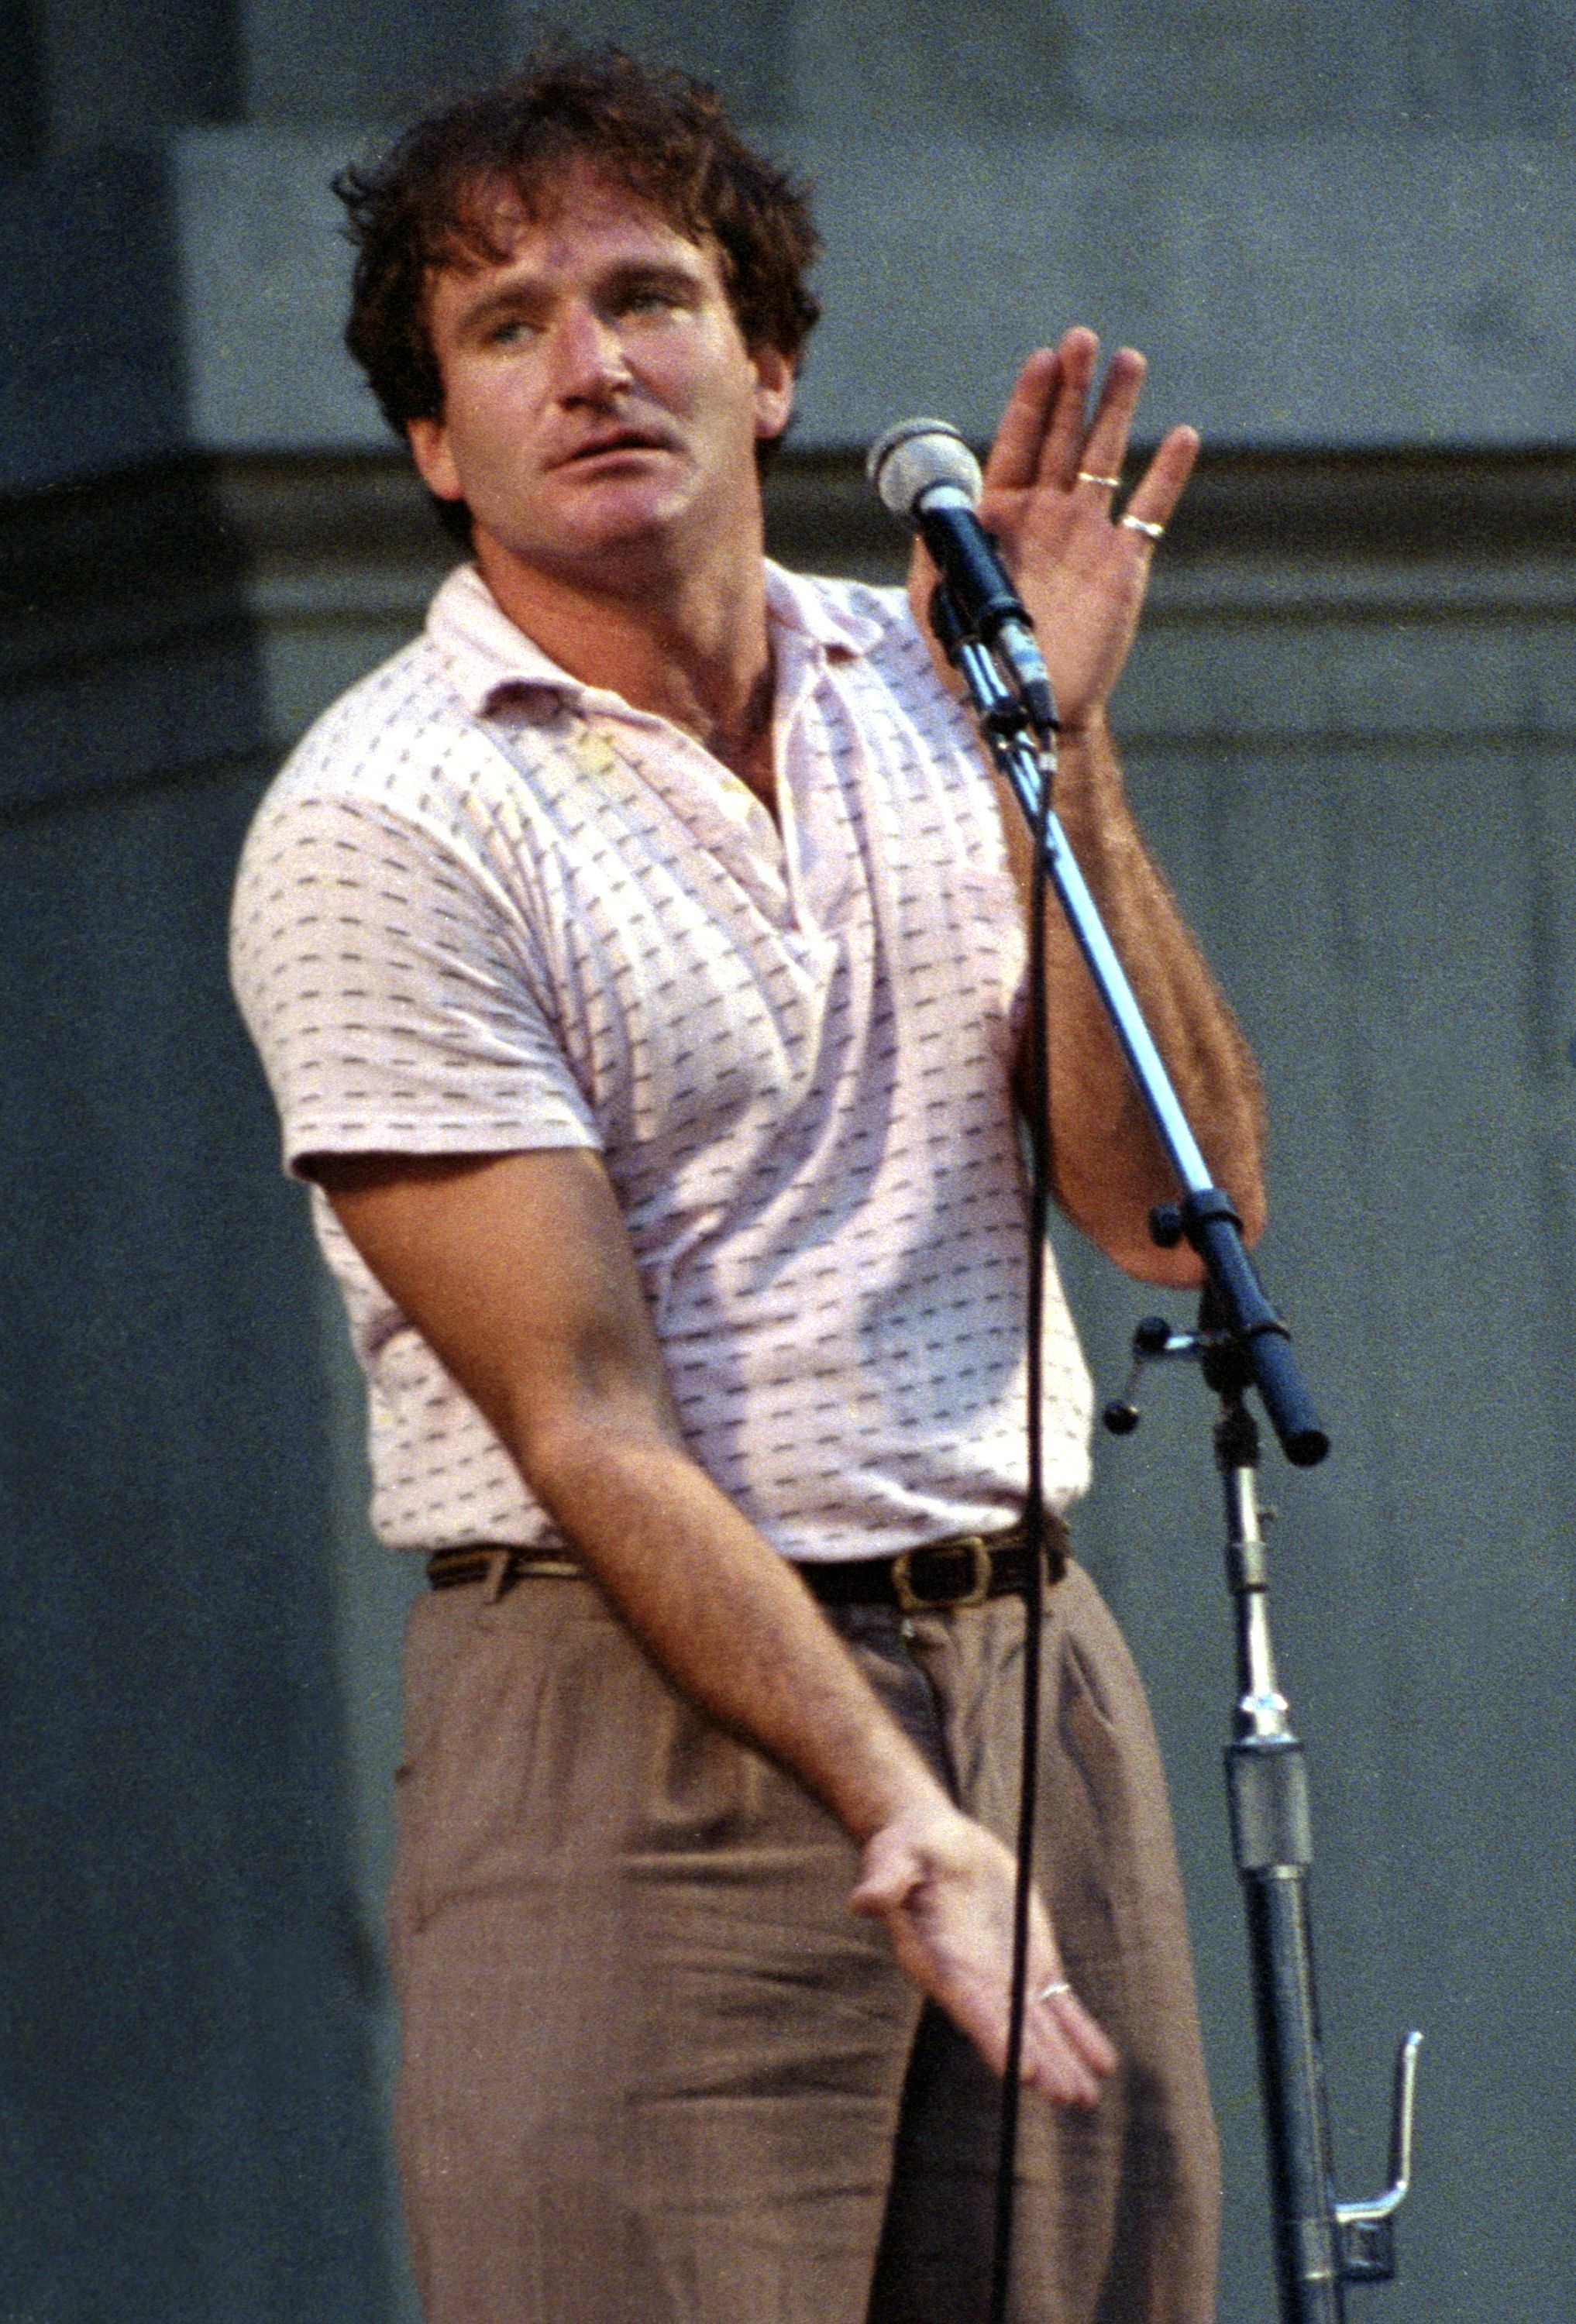 Robin Williams performs during the Bread and Roses benefit concert. | Source: Getty Images